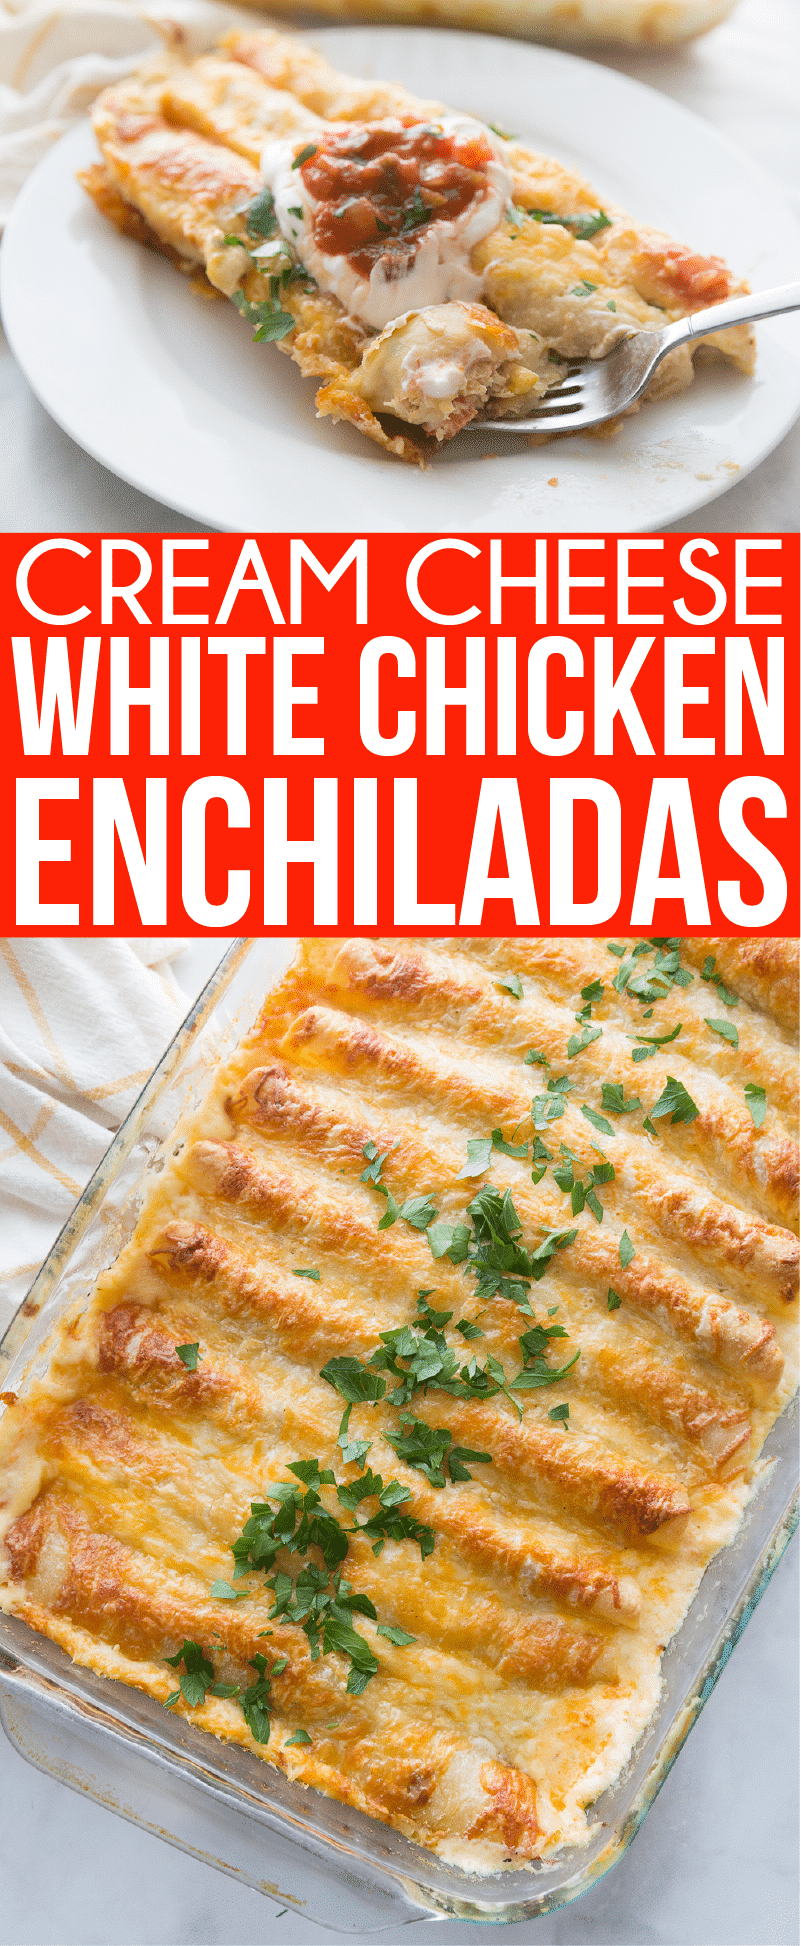 Pictures of white chicken enchiladas